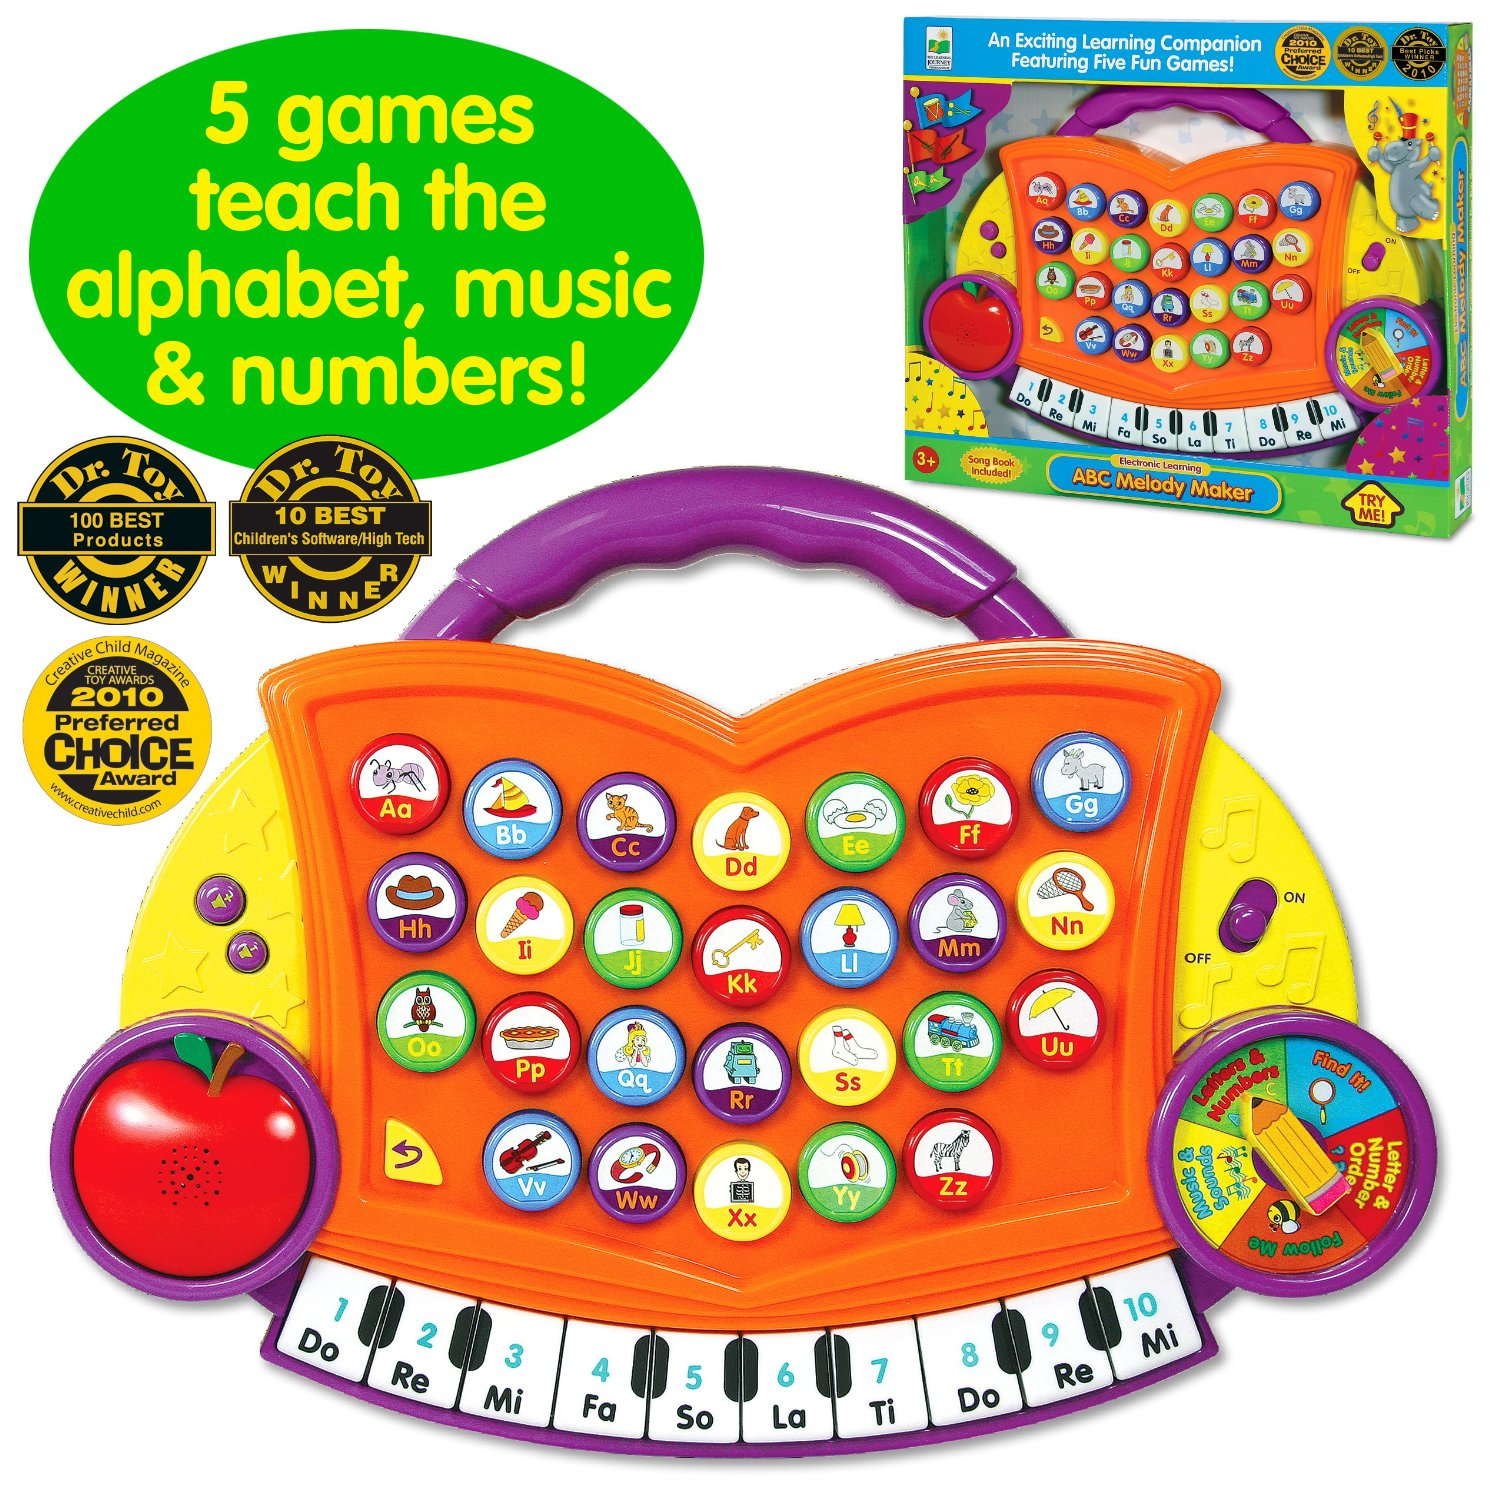 The Learning Journey ABC MELODY MAKER Just4bb